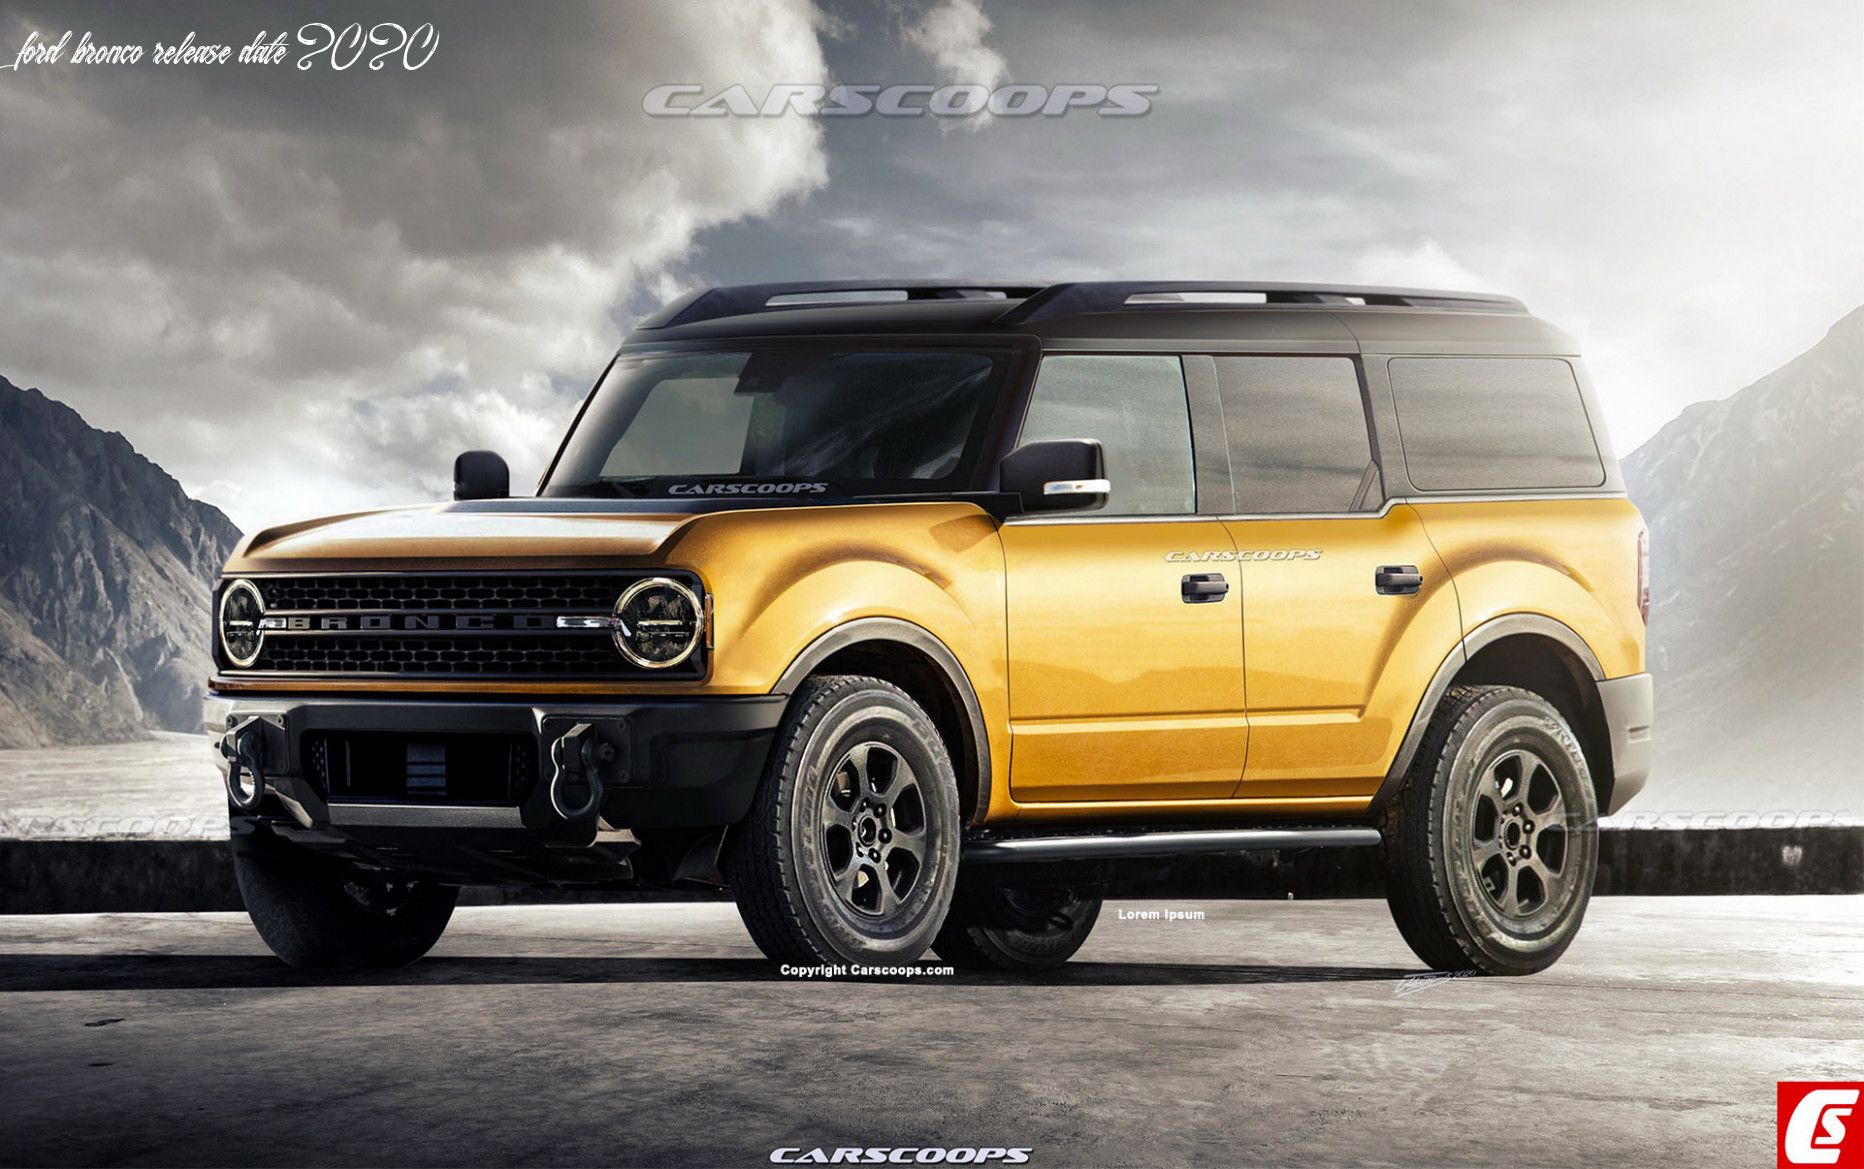 Ford Bronco Release Date 2020 In 2020 Ford Bronco Ford Bronco Concept Bronco Car